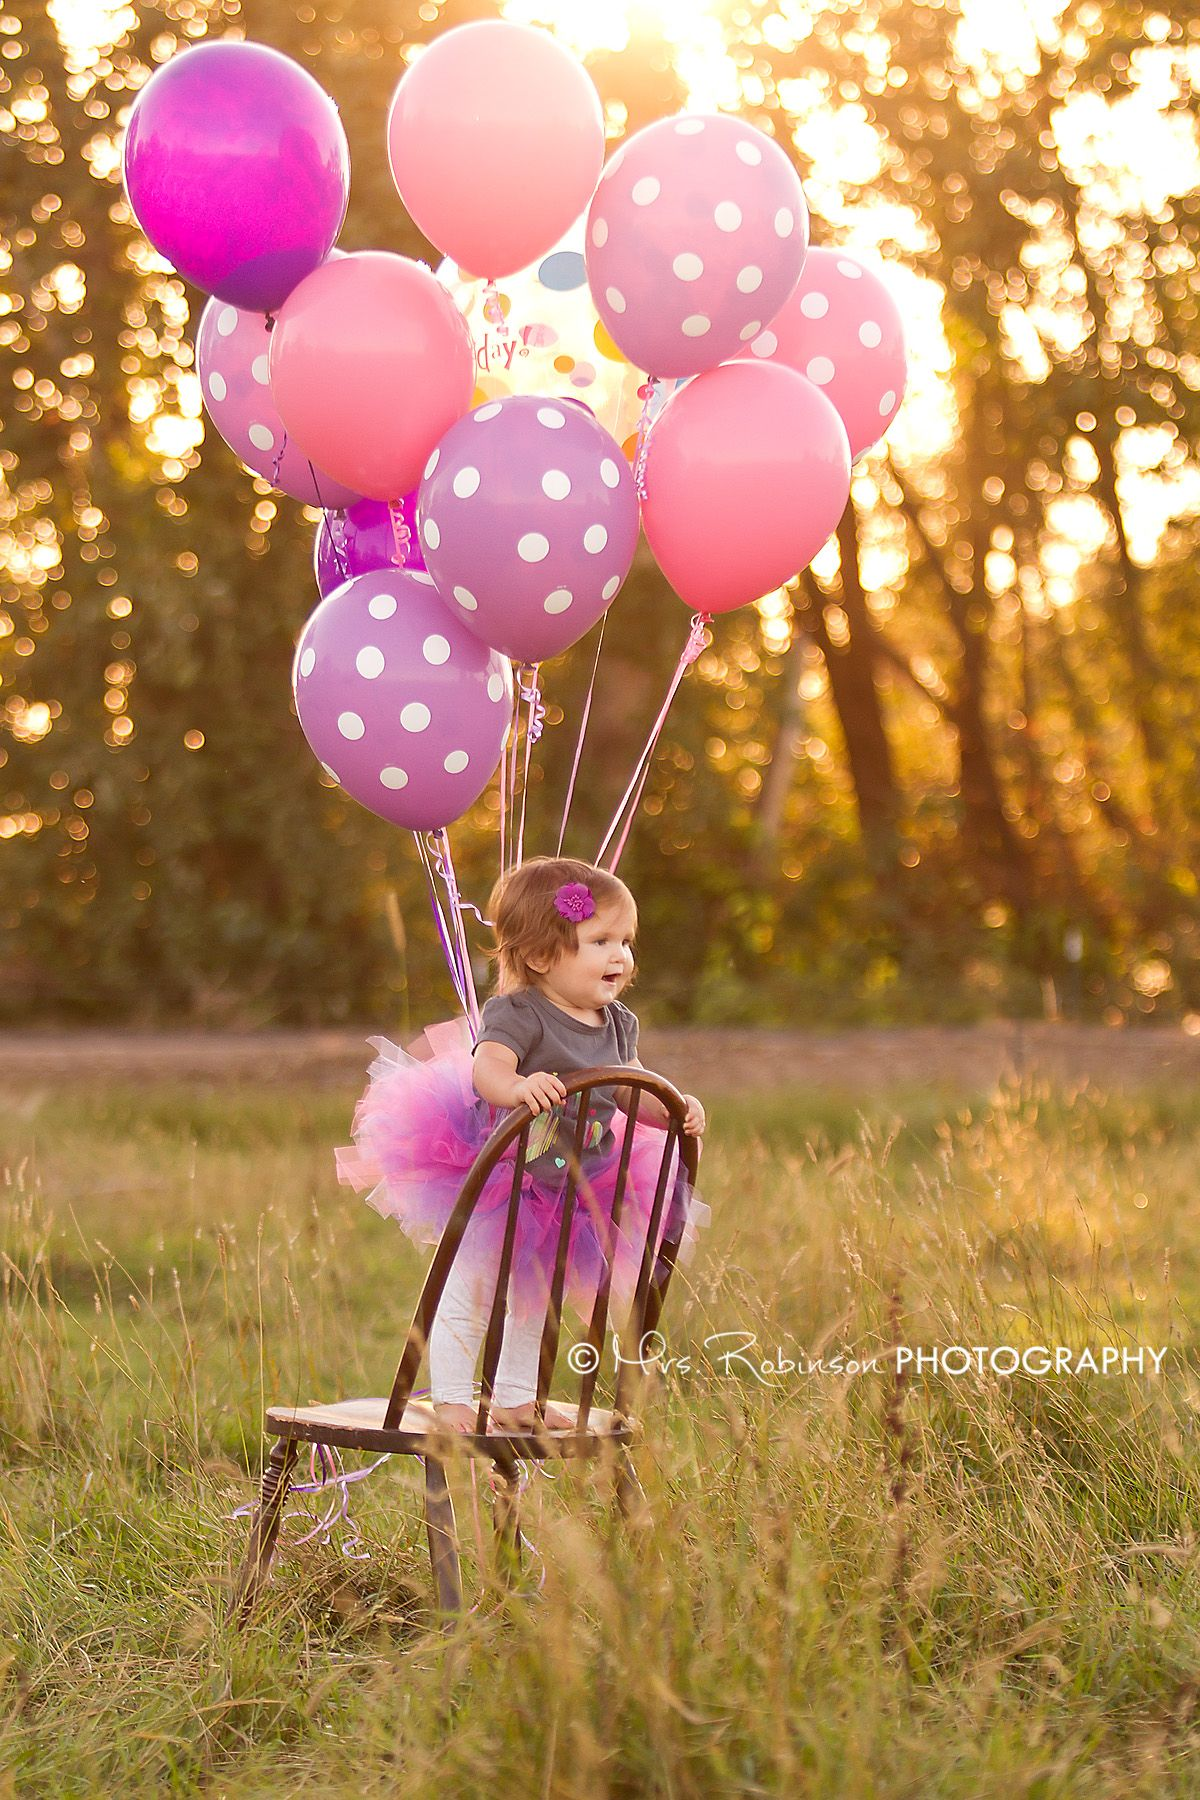 Girl First Birthday Outfit Pinterest: Mrs. Robinson Photography